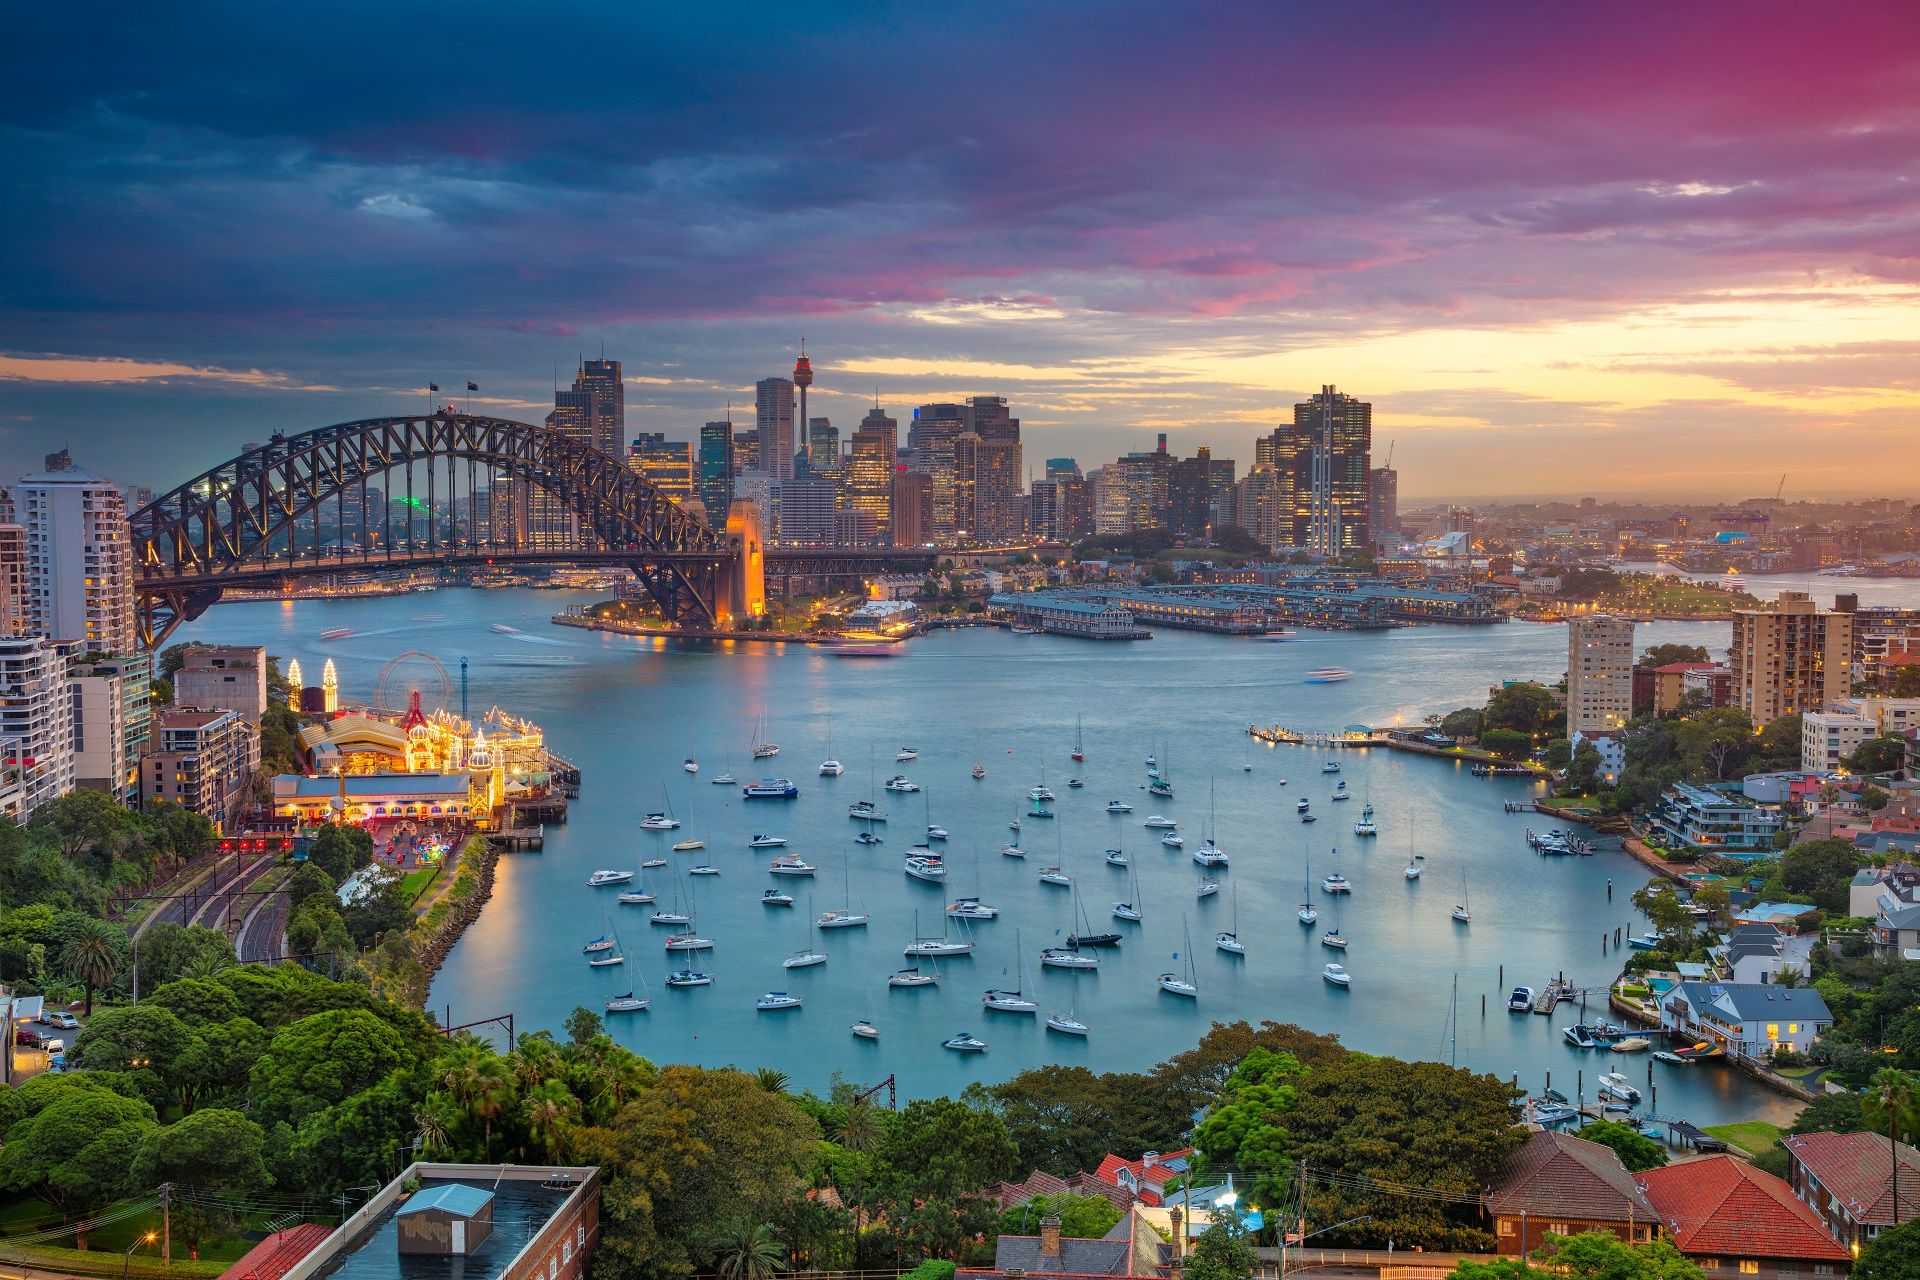 Sydney, Australia with Harbour Bridge_590390942